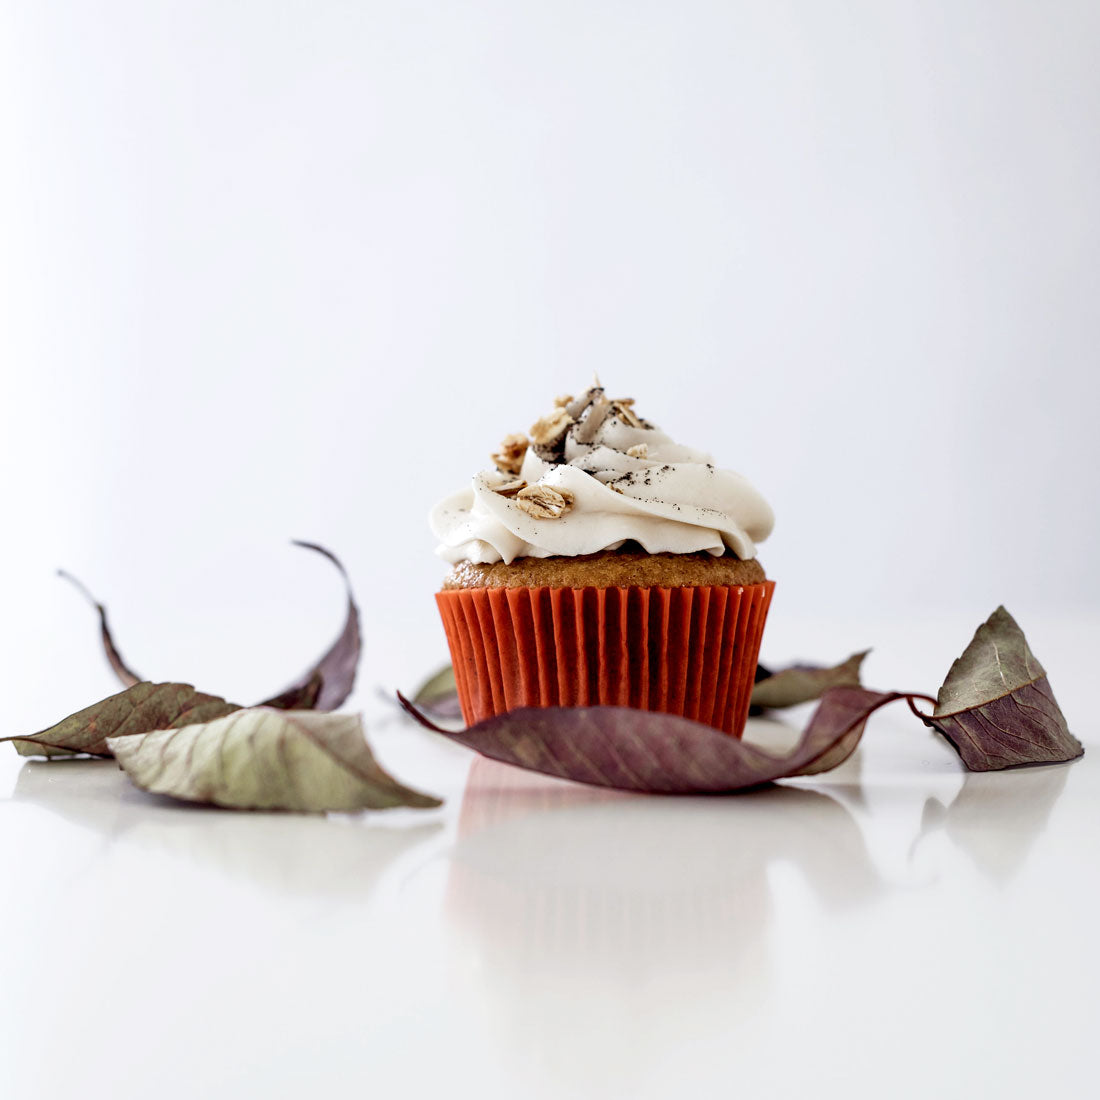 Image of the side of a Miss Jones Baking Co Pumpkin Spice Latte (PSL) Cupcake surrounded by dry leaves